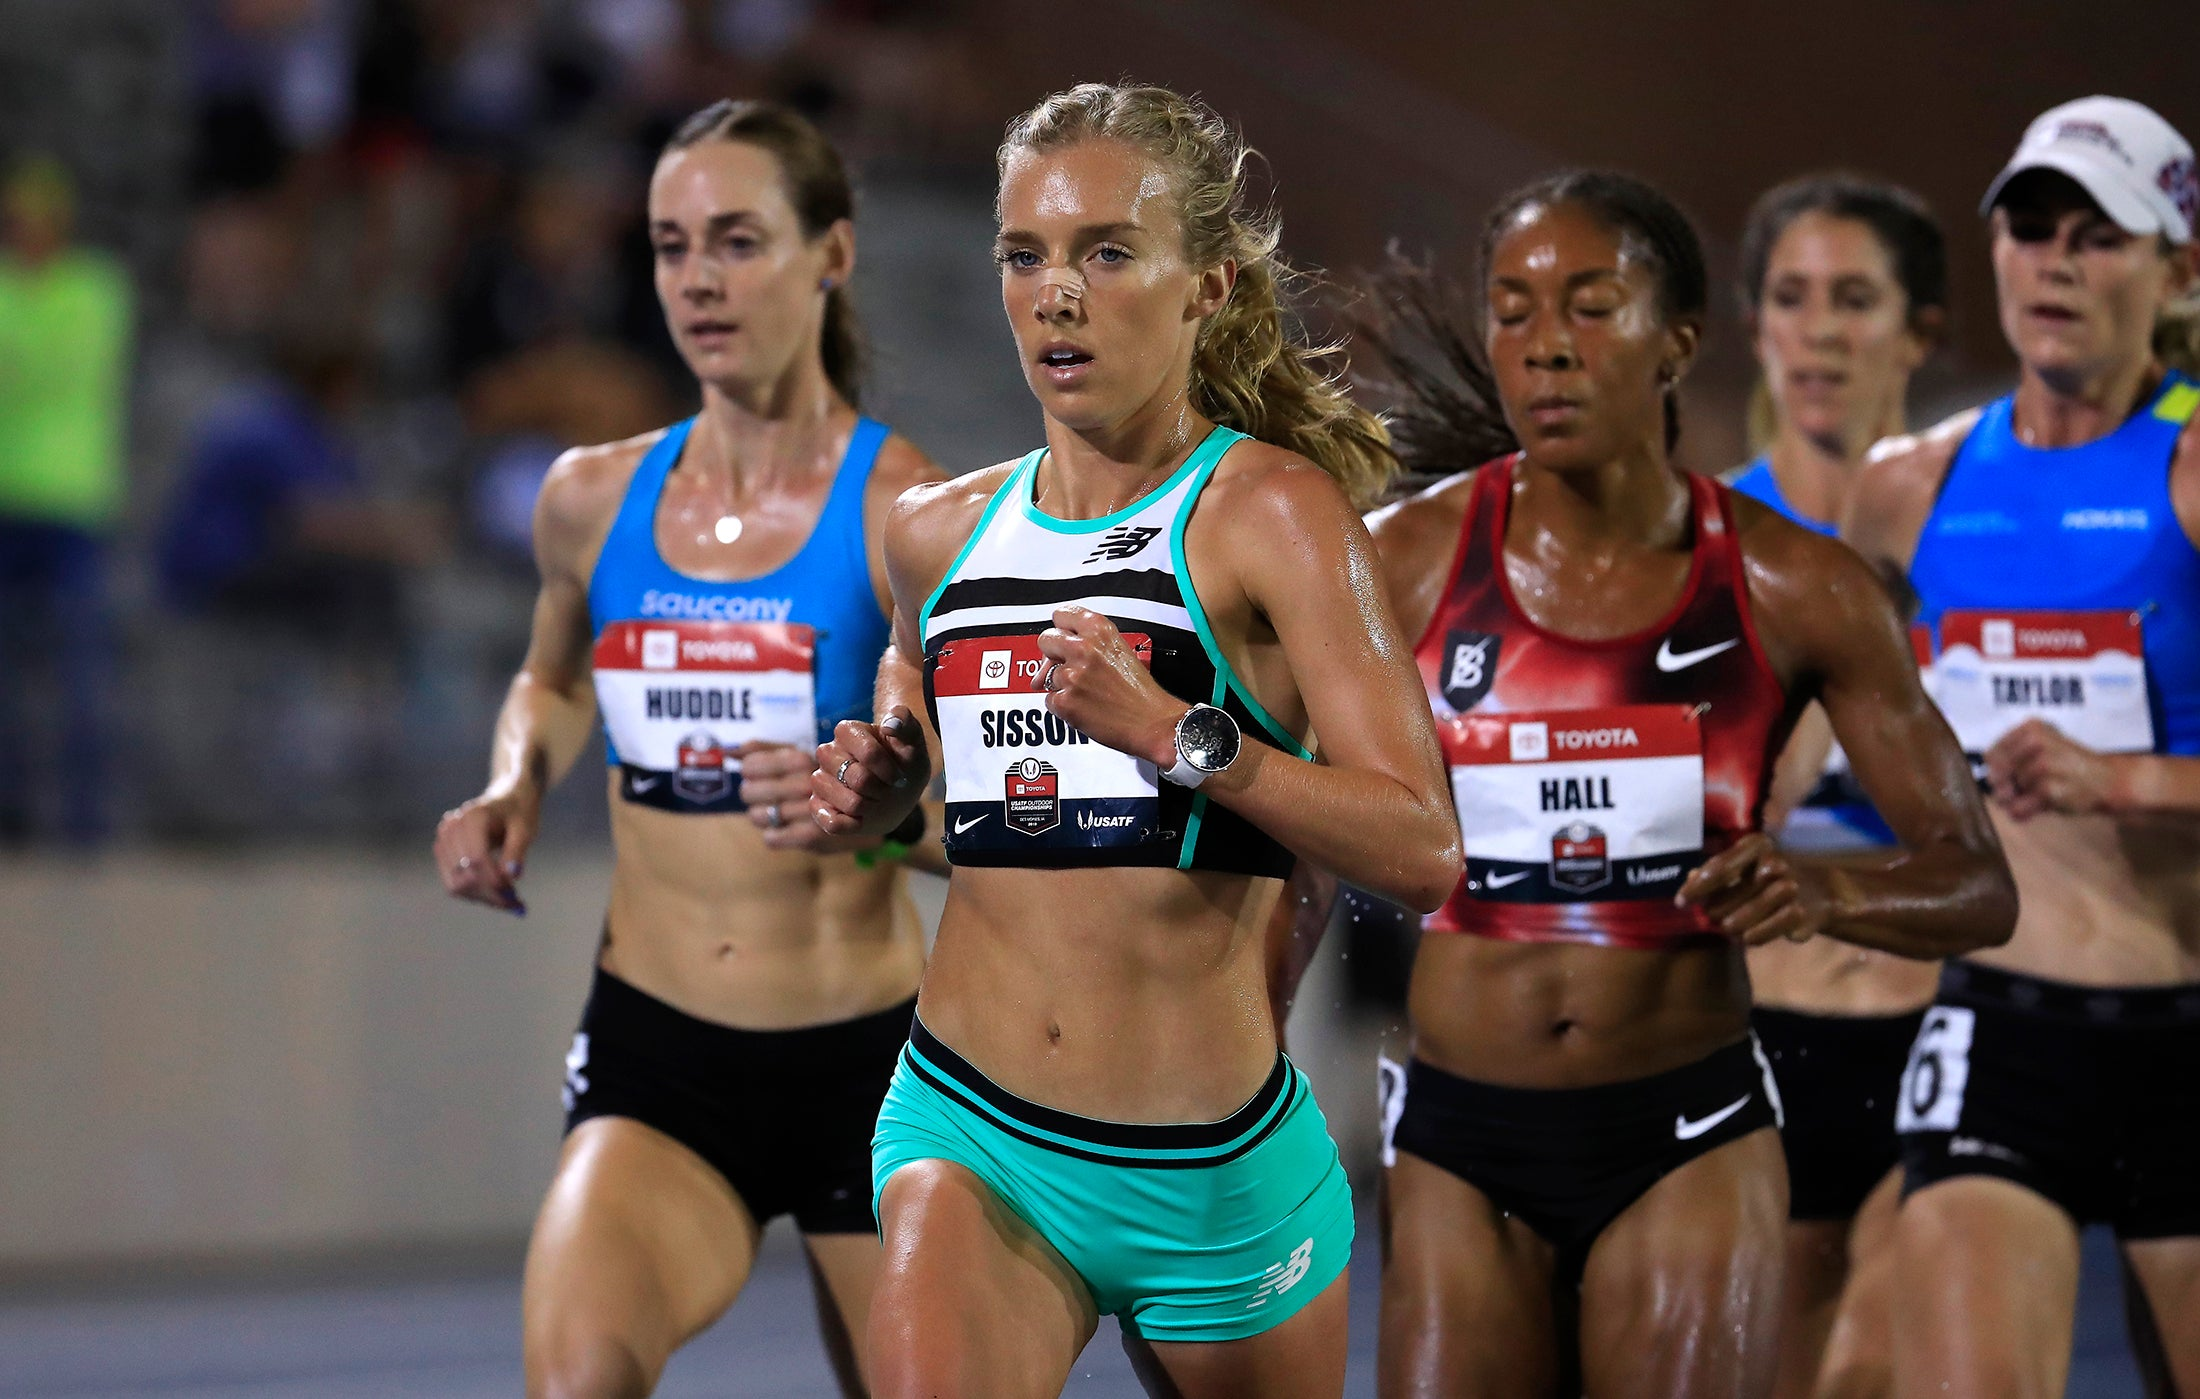 Sisson, Huddle and Taylor in Olympic Trials